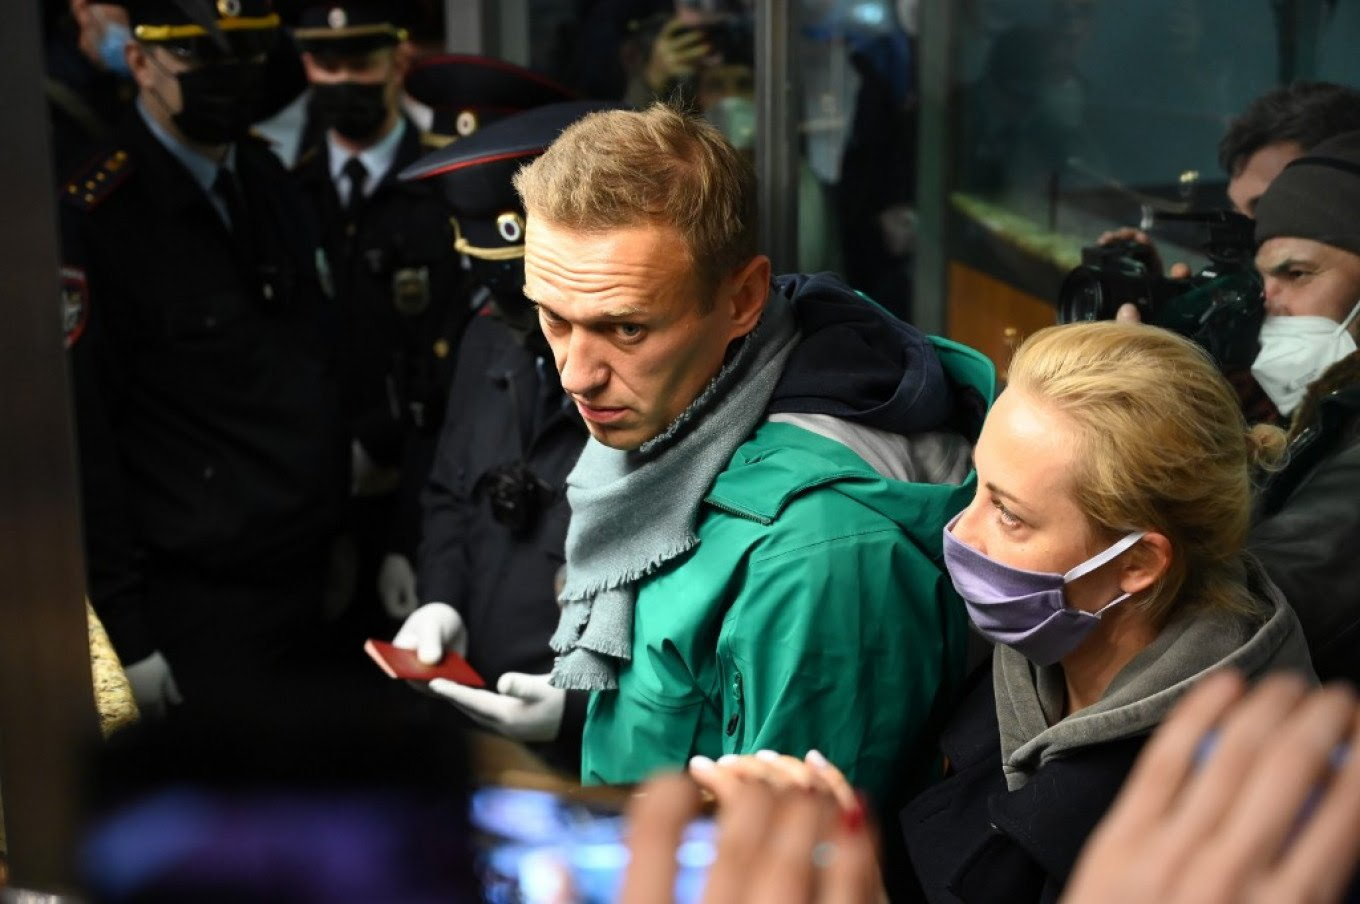 Memorial Human Rights Centre: Detention of Navalny a politically motivated unlawful act of retribution